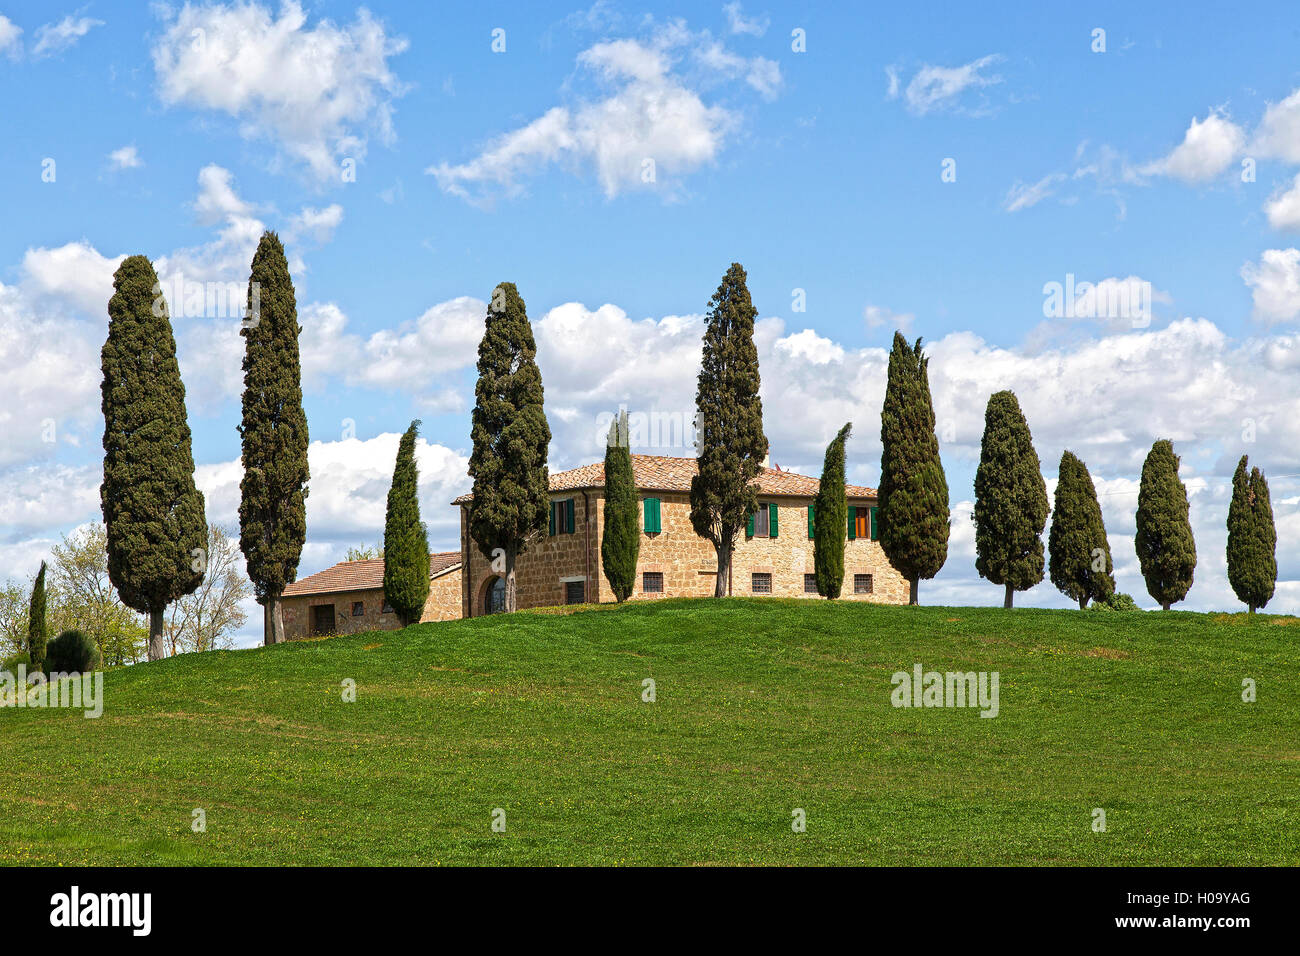 Country estate and cypress trees, near Pienza, Tuscany, Italy - Stock Image